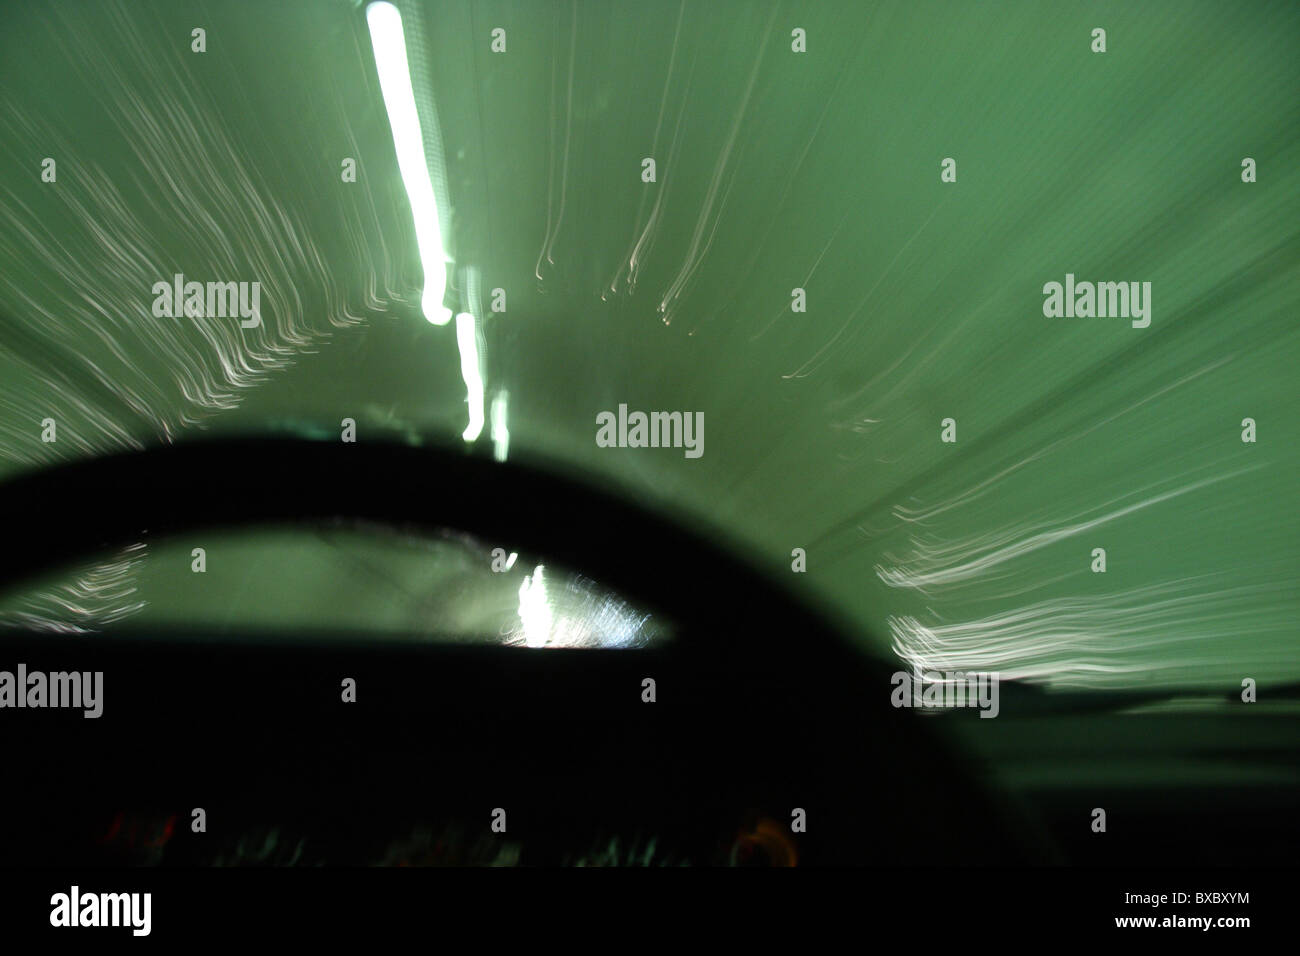 Blurred motion of car moving through a tunnel with steering wheel in foreground Stock Photo